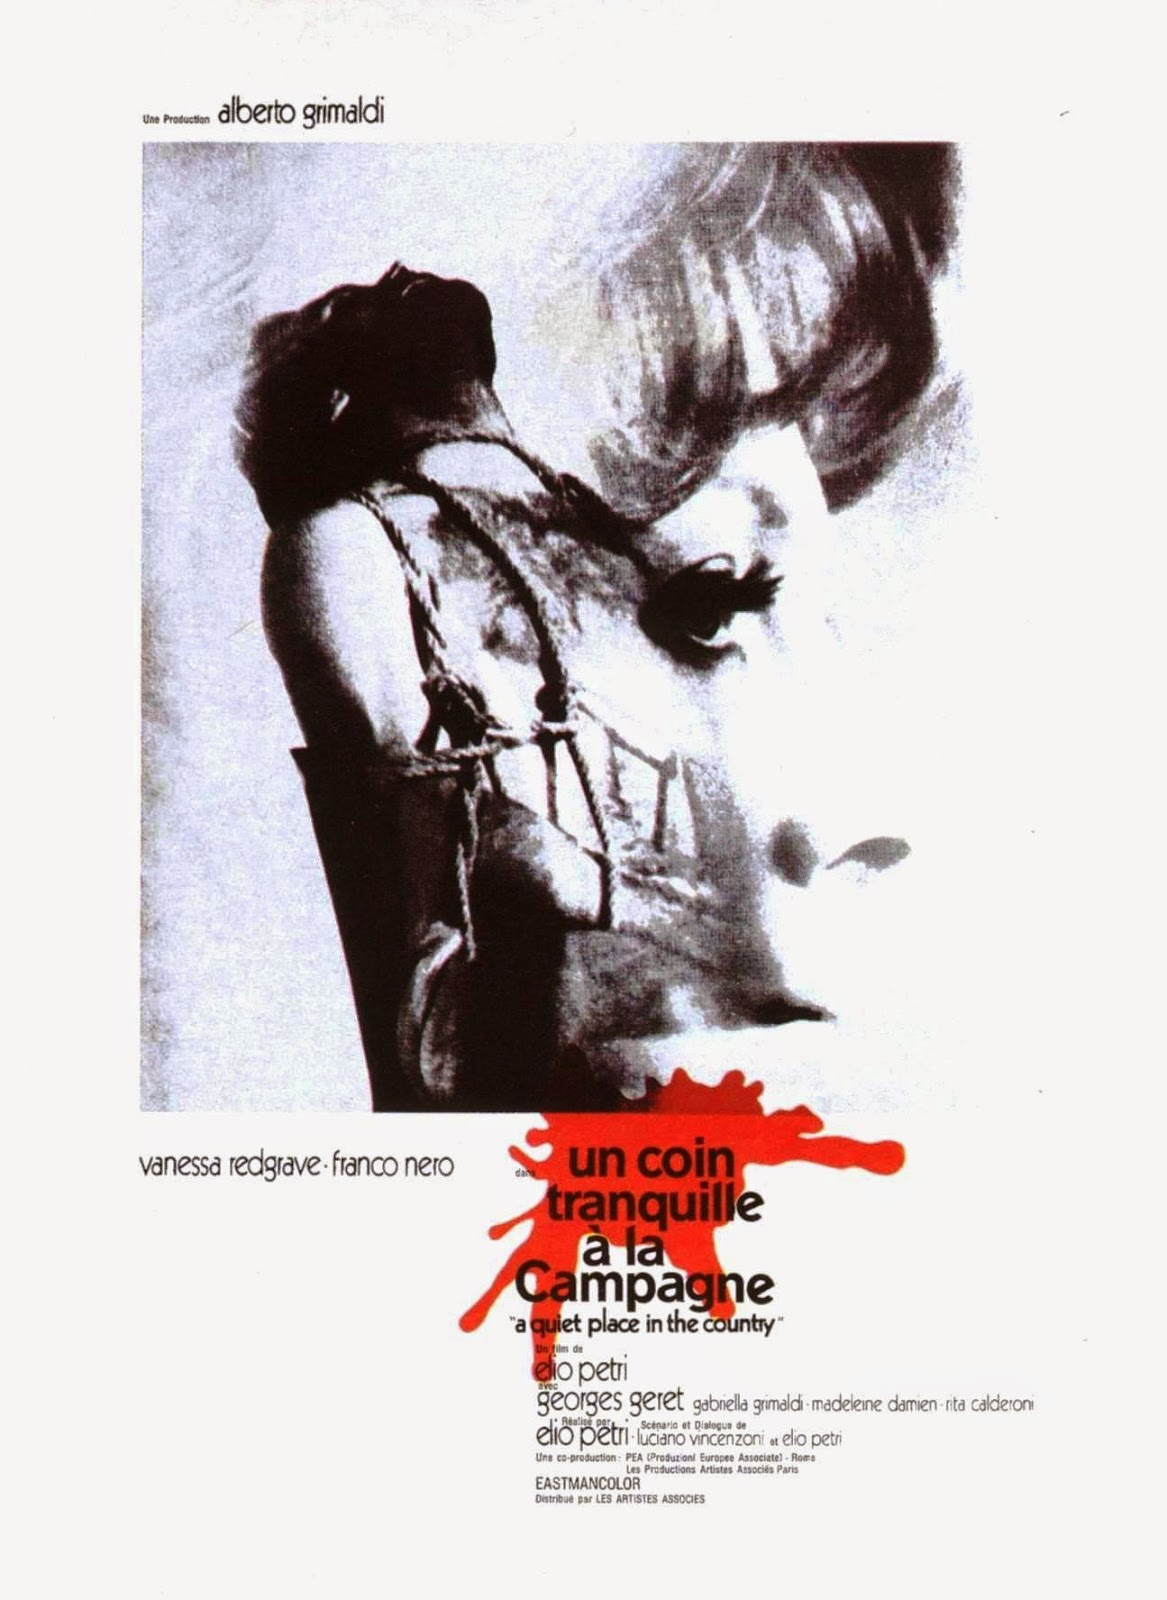 http://jazzsoundtrack.blogspot.it/2015/04/2-great-jazz-ennio-morricone-e-il-jazz.html